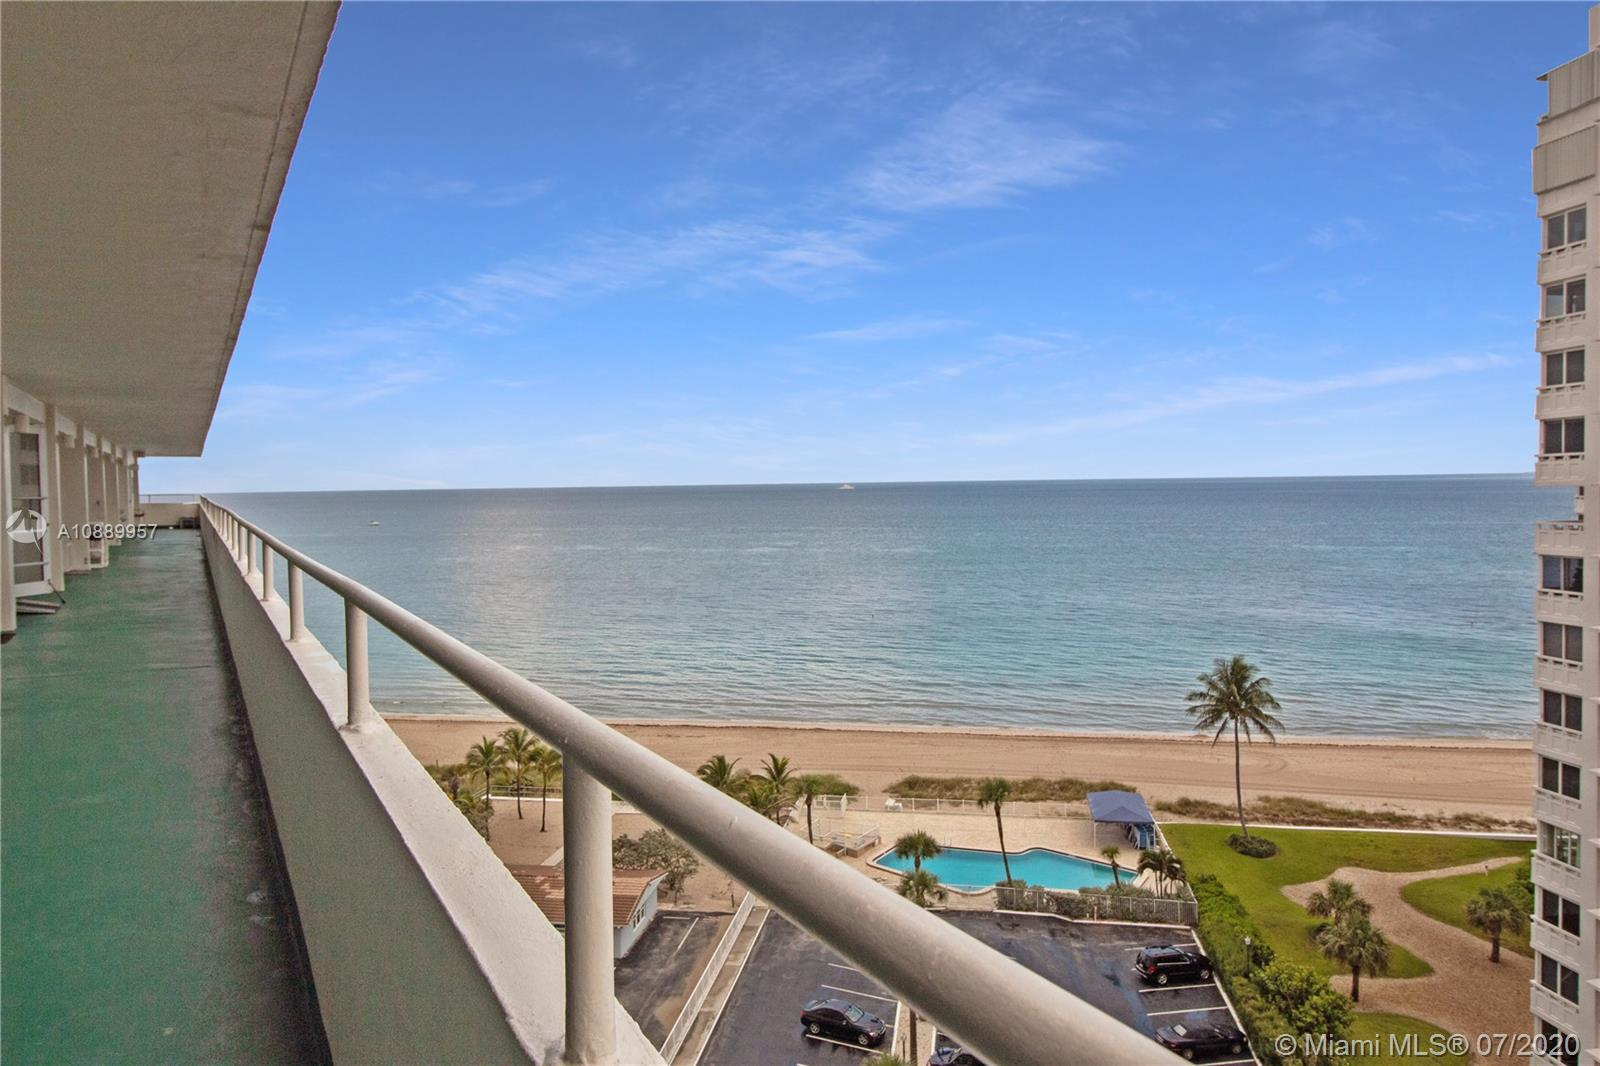 RENOVATED OPEN-LAYOUT OCEAN FRONT CONDO WITH AMAZING VIEWS. IMPACT WINDOWS/DOORS. WITHIN WALKING DIS